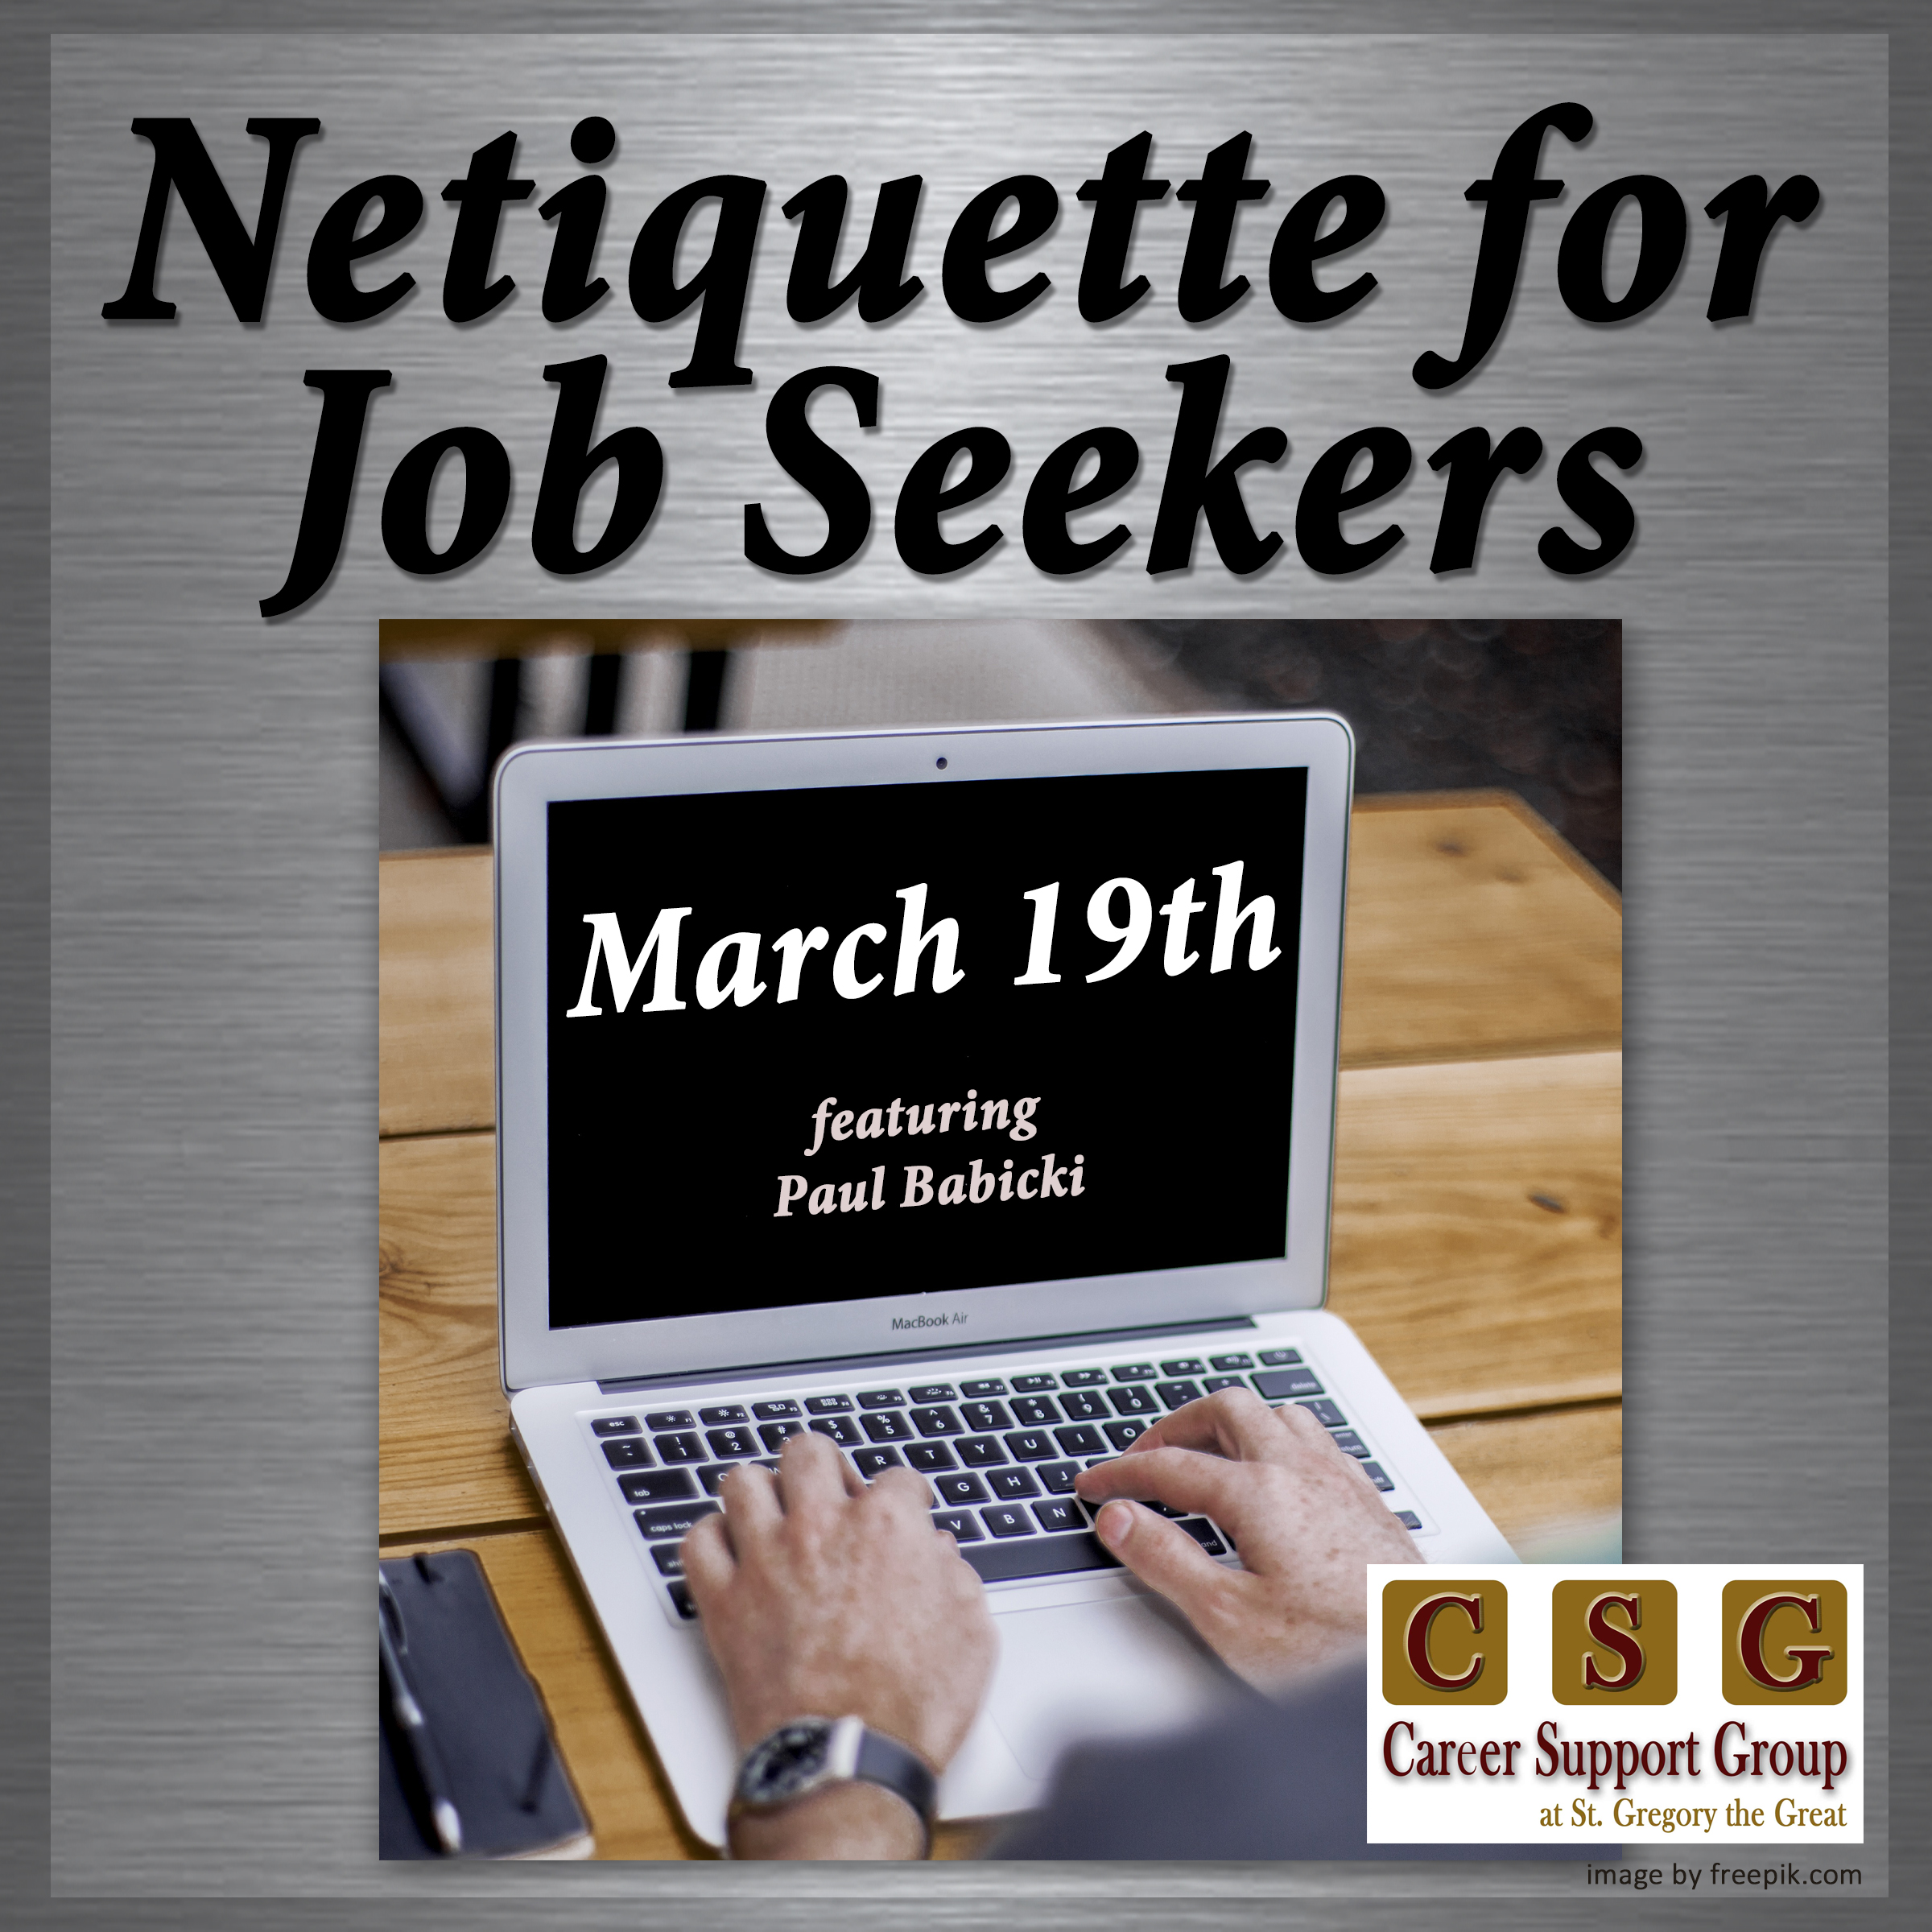 Free Resources For Job Seekers: Career Support Group At St